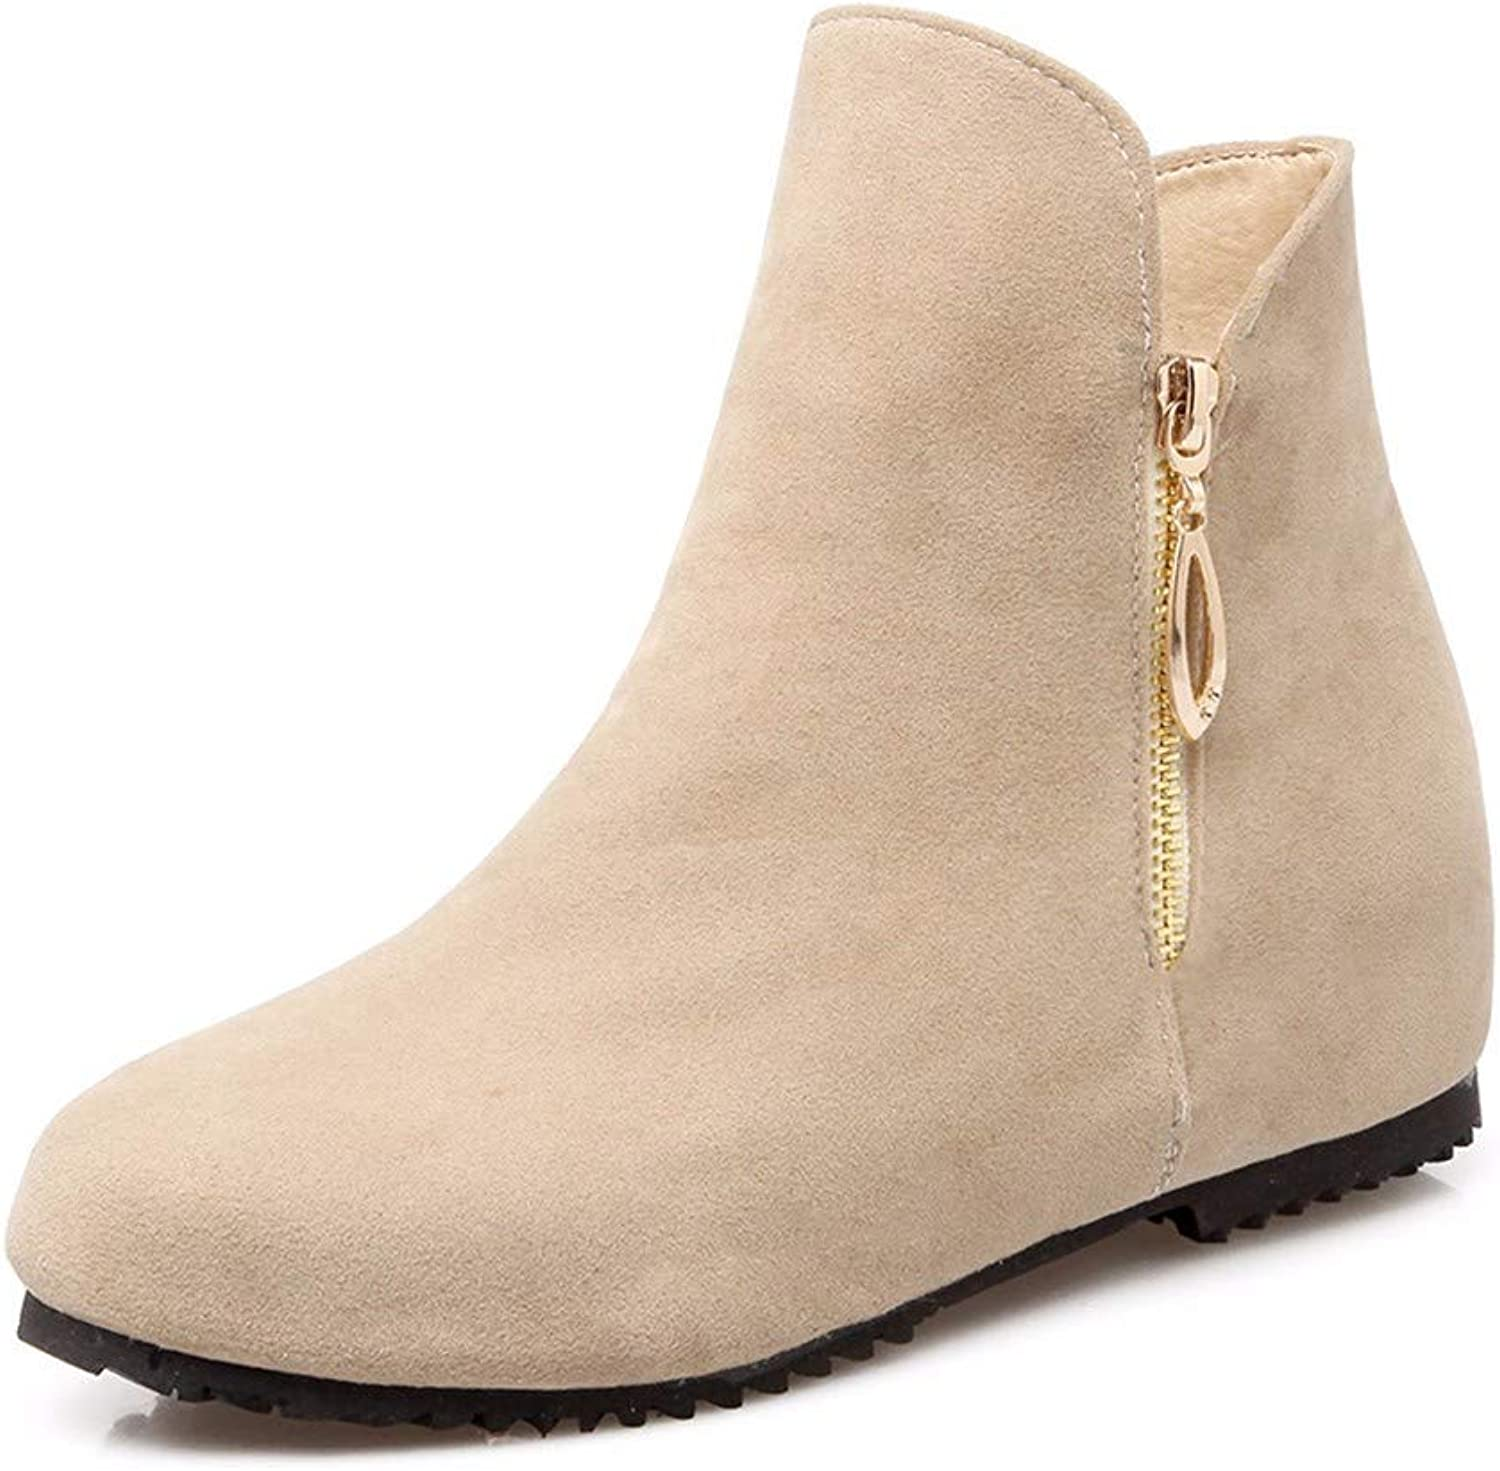 Winter Boots Suede Boots Size